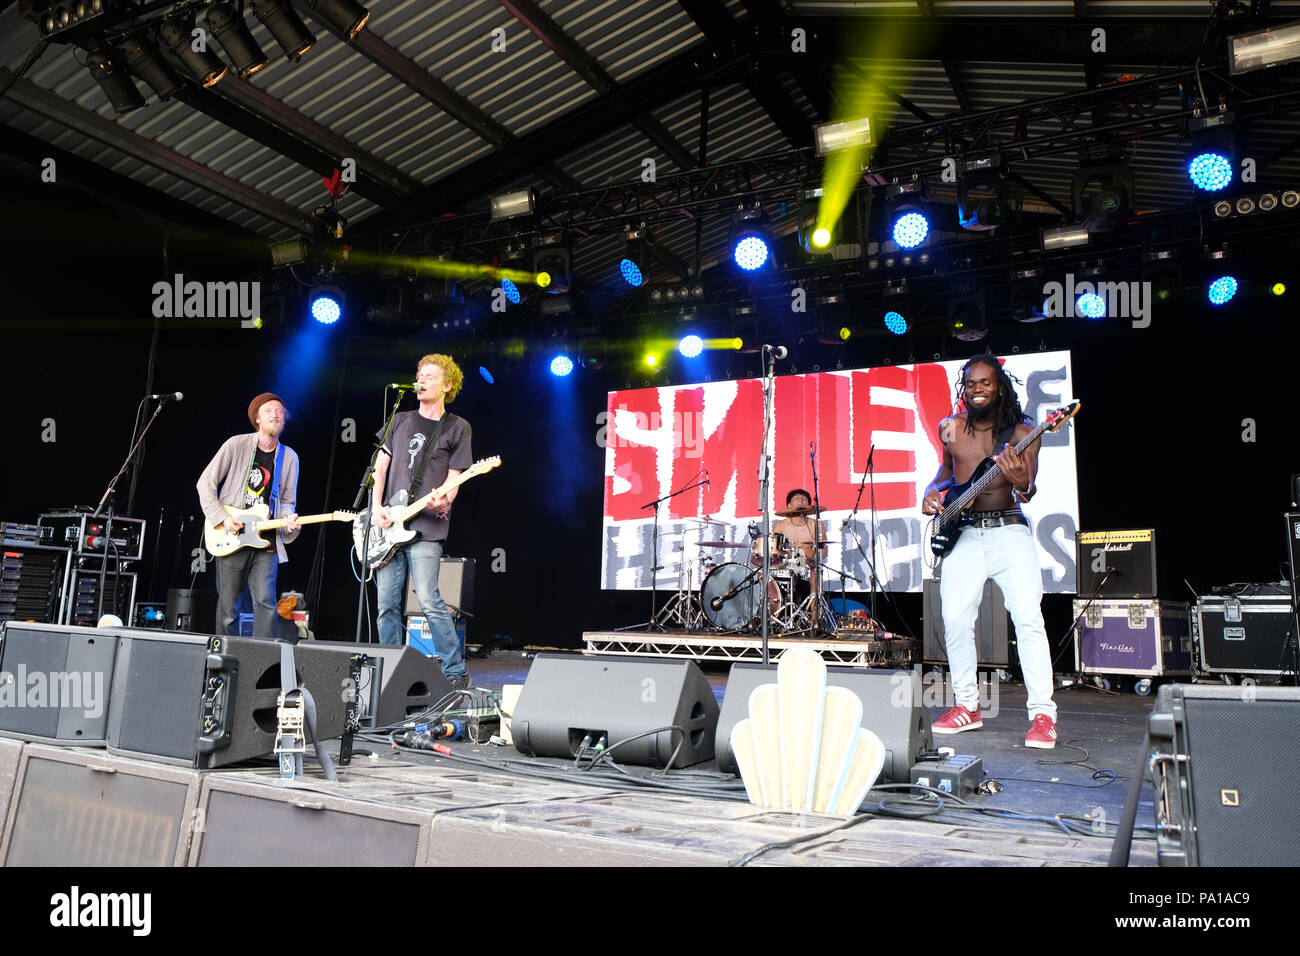 Nozstock Festival near Bromyard, Herefordshire, UK - Friday 20th July 2018 - Smiley and the Underclass perform on the Orchard Stage at the start of the 20th Nozstock music festival in warm sunshine with local temps of 25c -  Nozstock runs until Sunday 22nd July 2018. Photo Steven May  / Alamy Live News - Stock Image